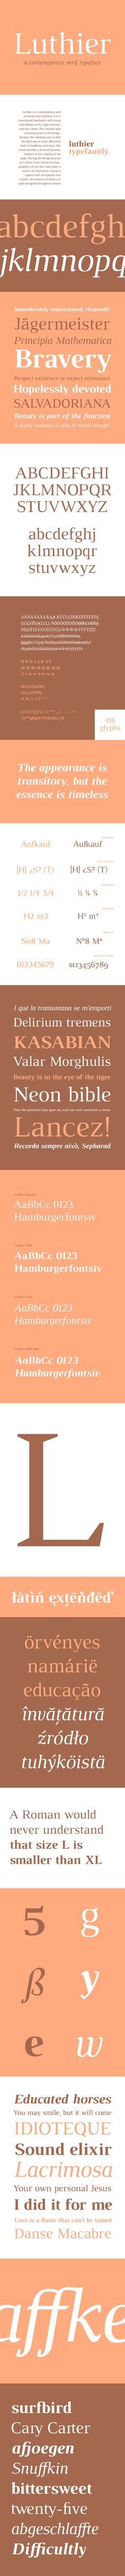 Luthier is a contemporary serif typeface. A transitional fontfamily with sharp serifs, high contrast, and four styles. Free for personal and commercial use